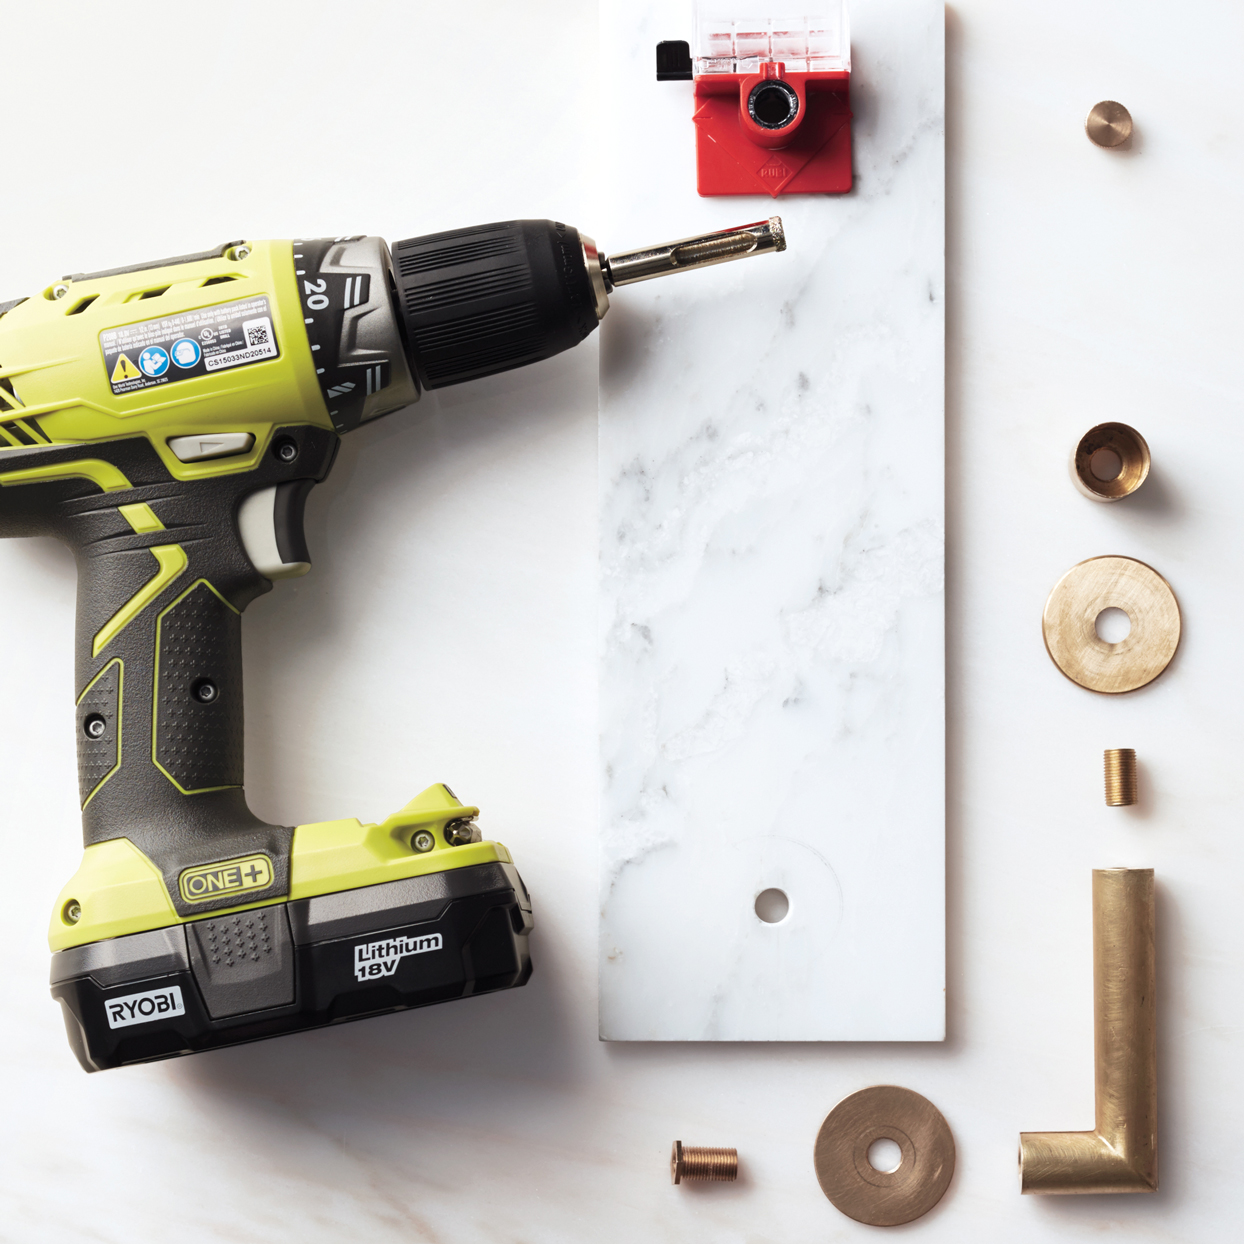 power drill with other materials